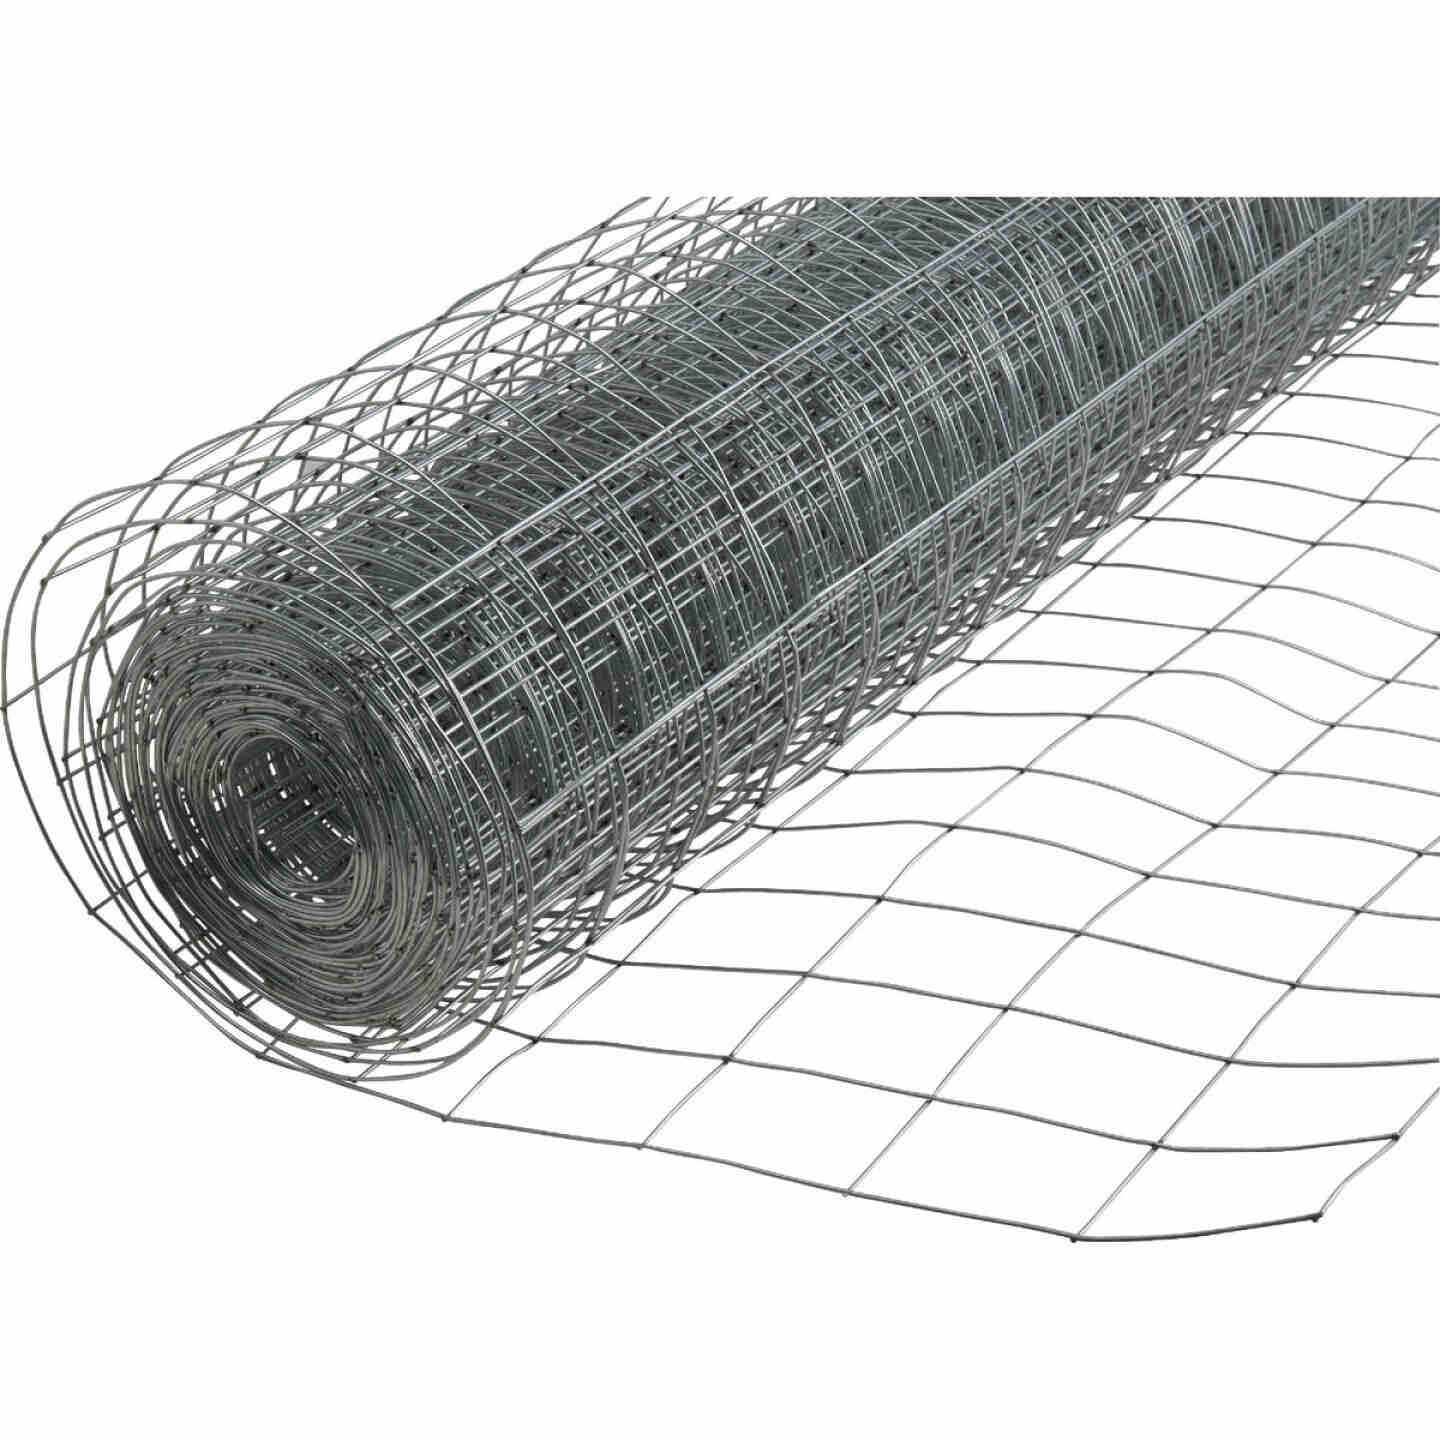 Do it Economy 36 In. H. x 50 Ft. L. (3x2) Galvanized Welded Wire Fence Image 1